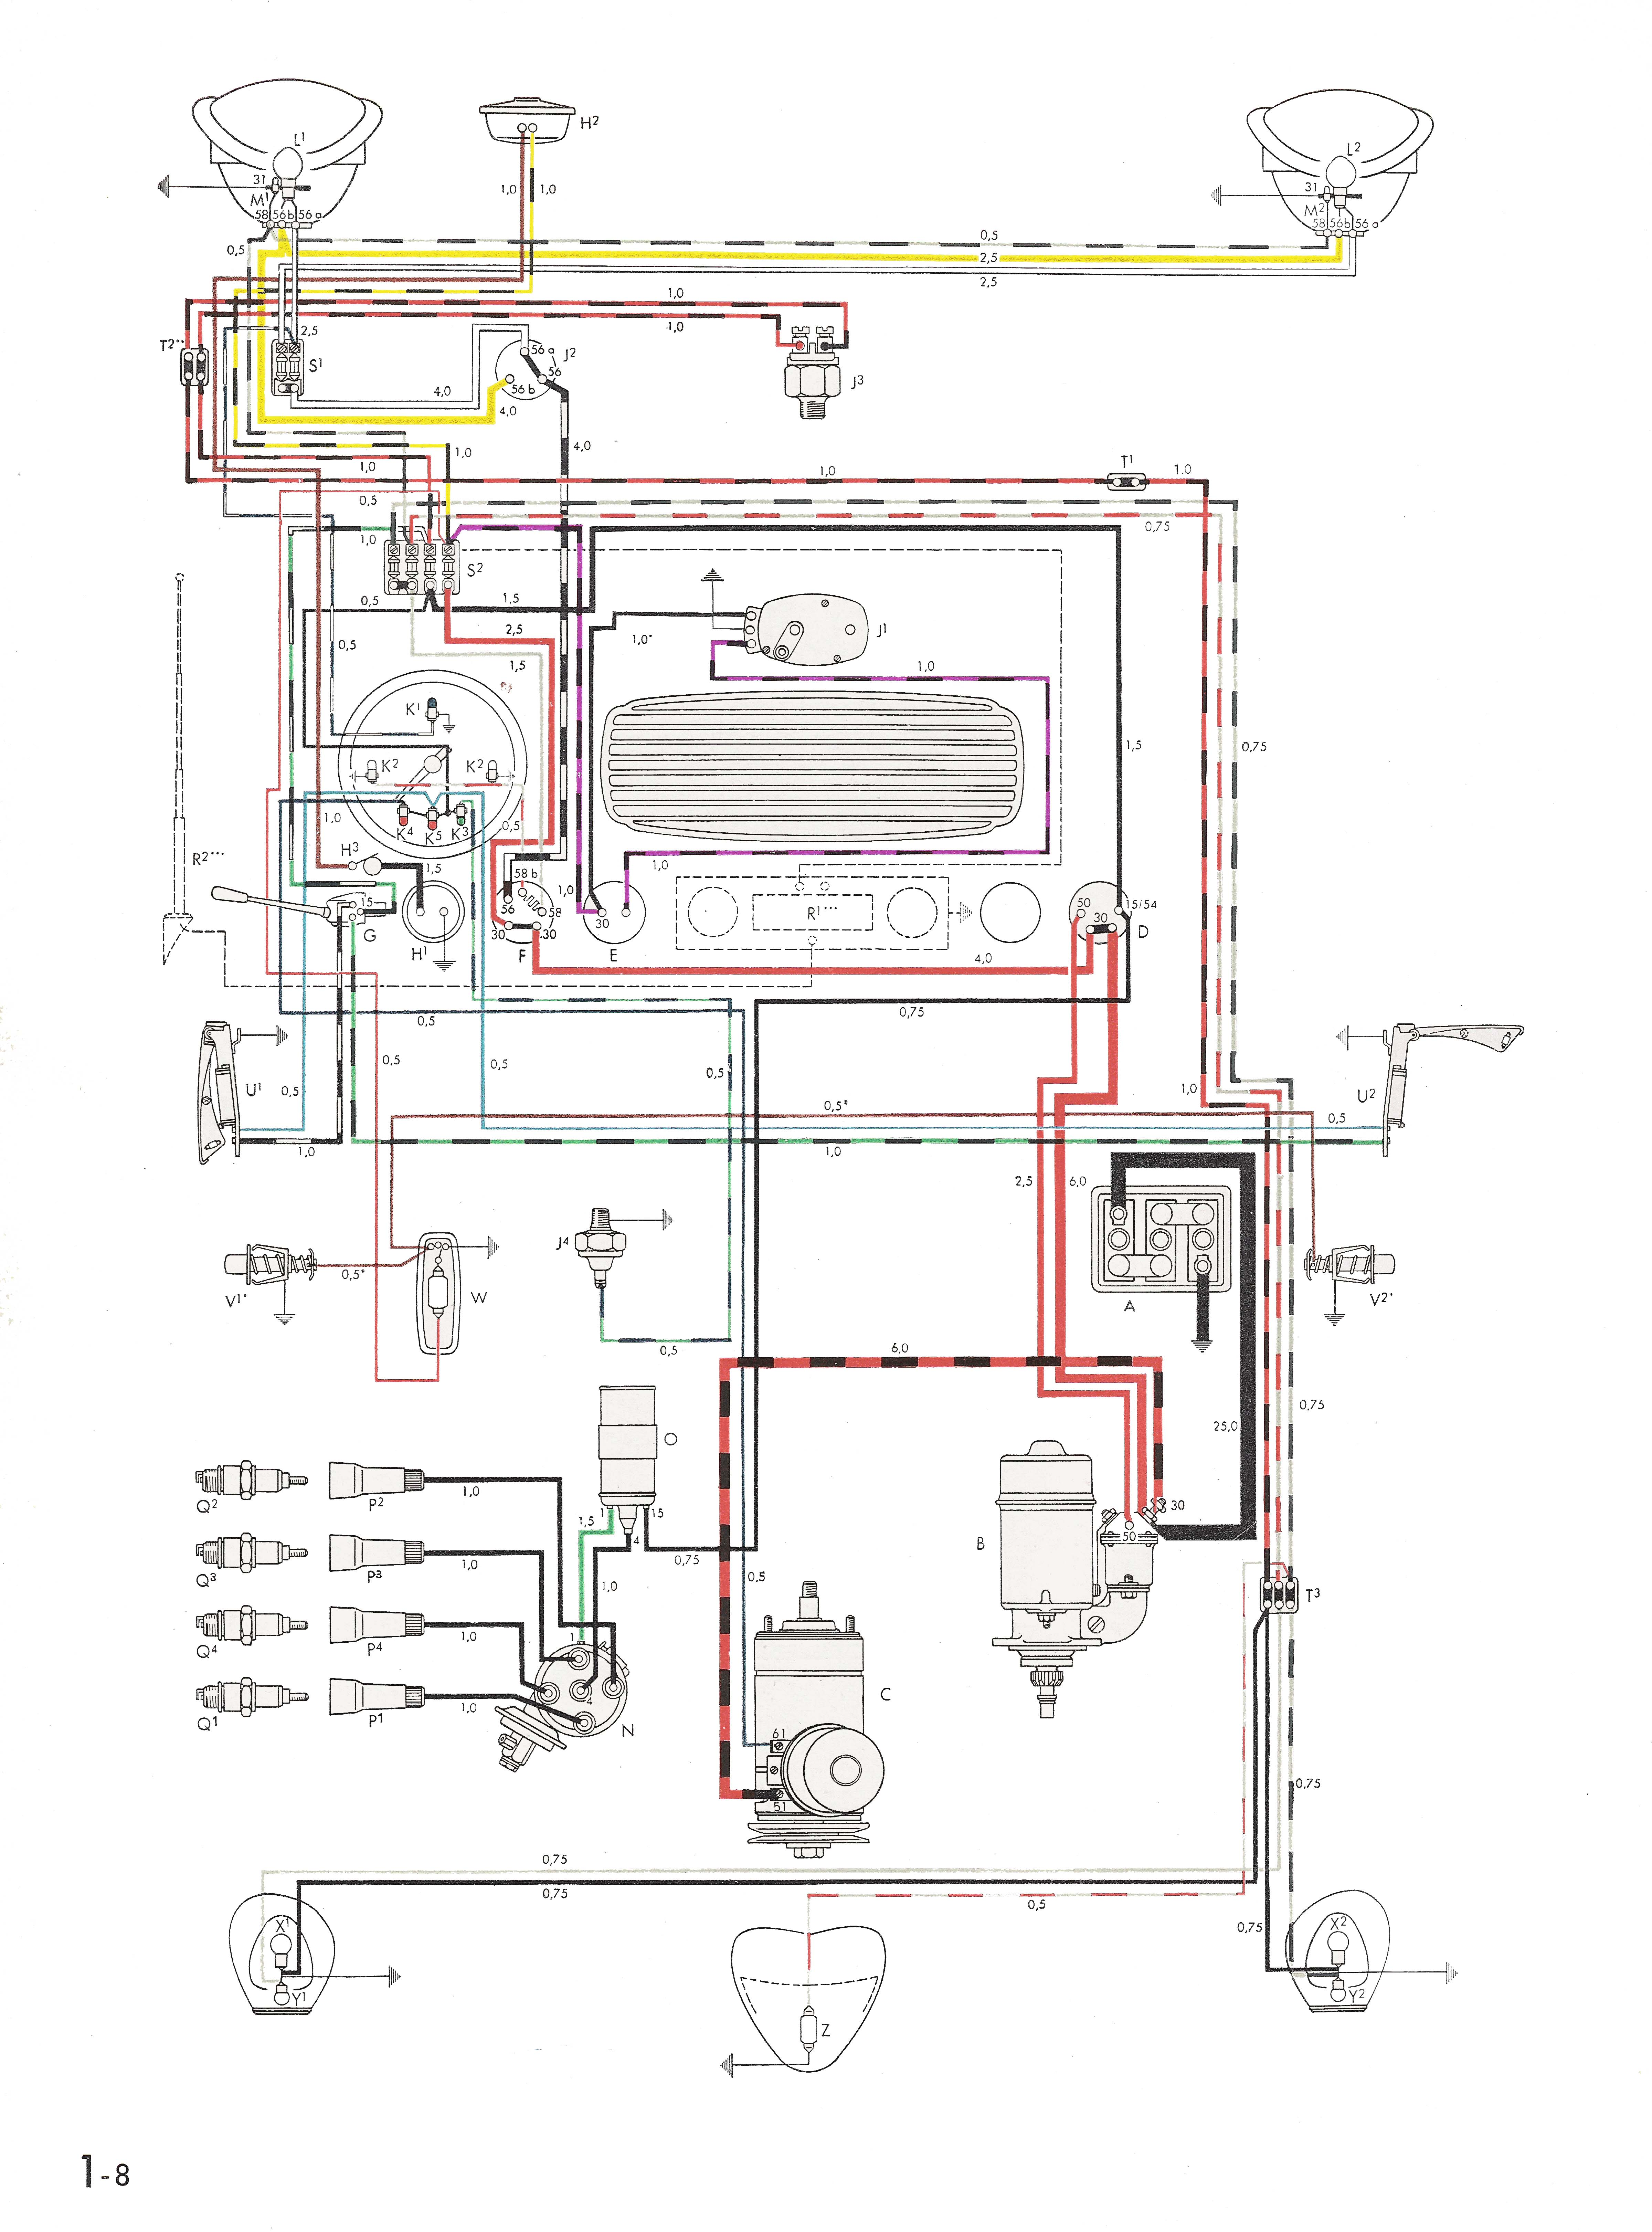 1973 vw bus wiring diagram 6 2 offense thing get free image about